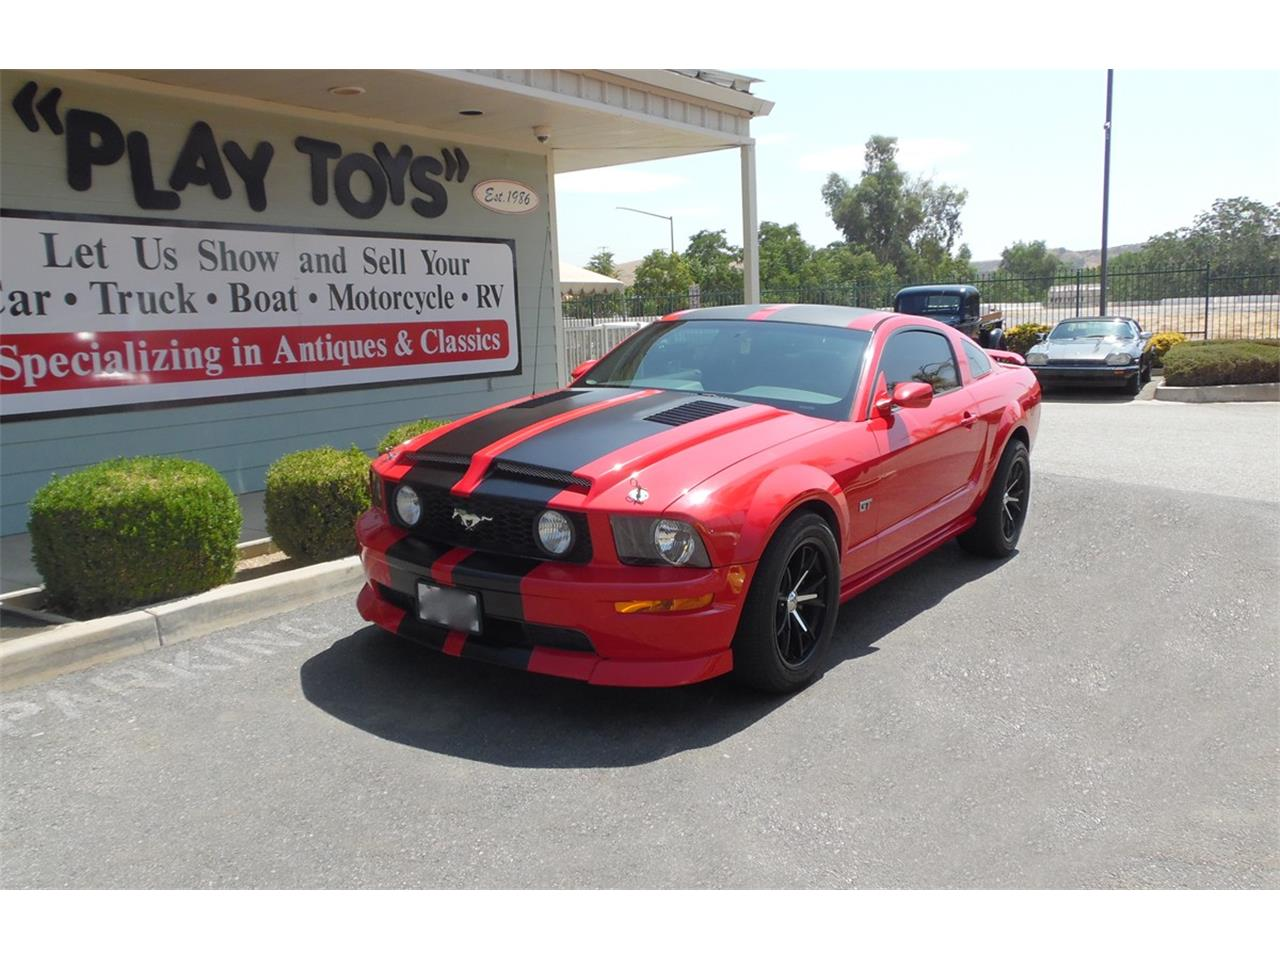 Large picture of 2005 mustang gt 12995 00 offered by play toys classic cars odwq